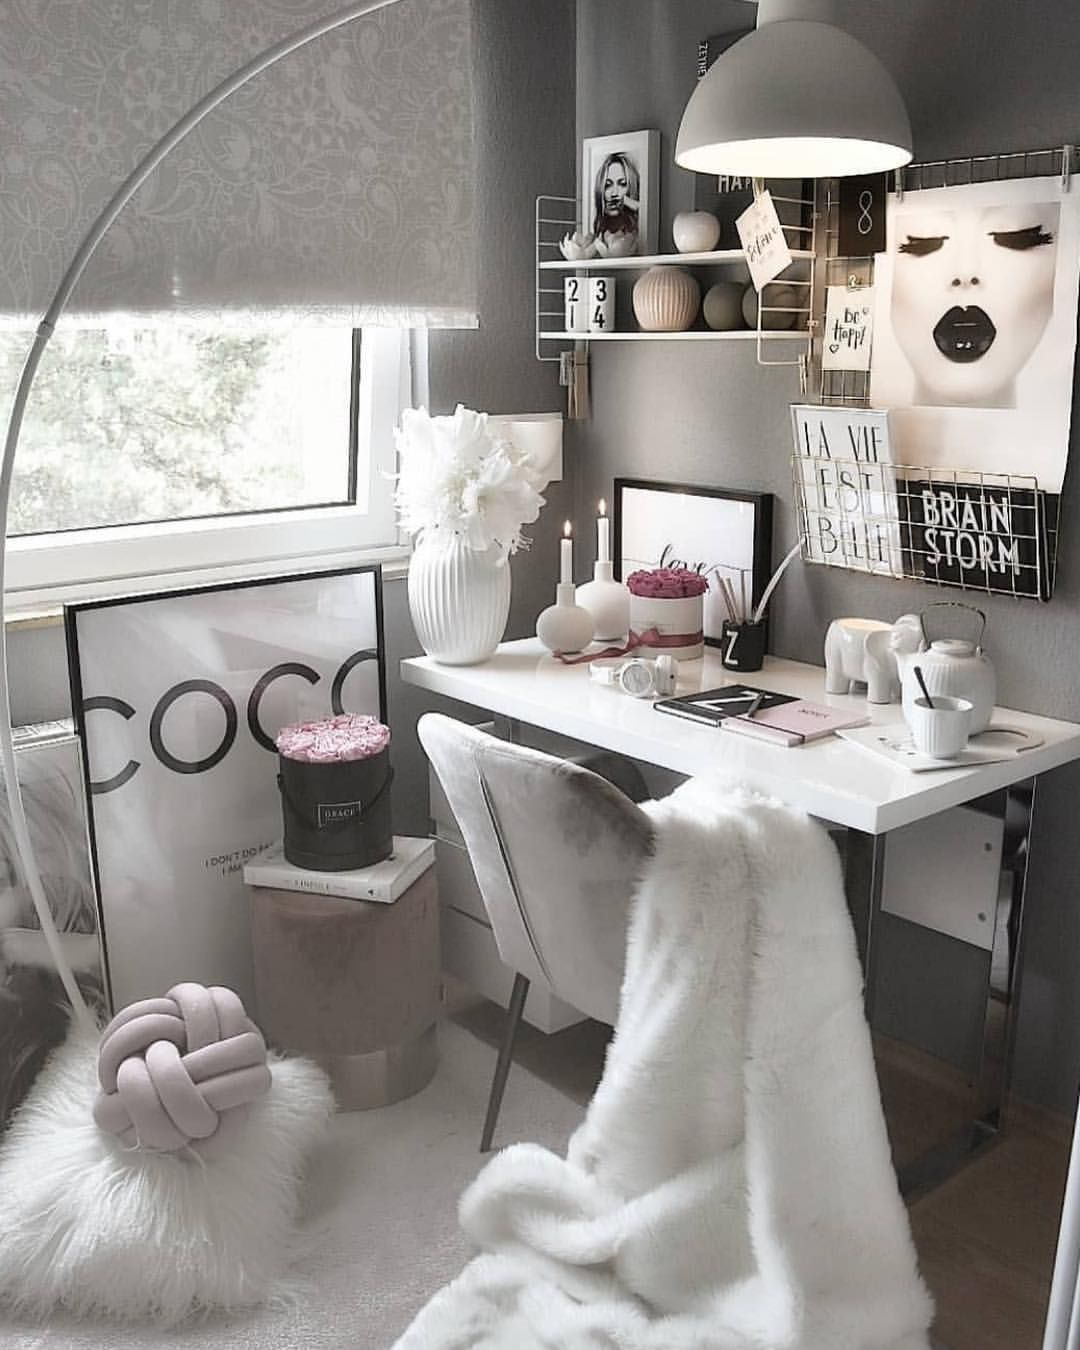 2 045 Likes 33 Comments Room For Girl Interior Inspo